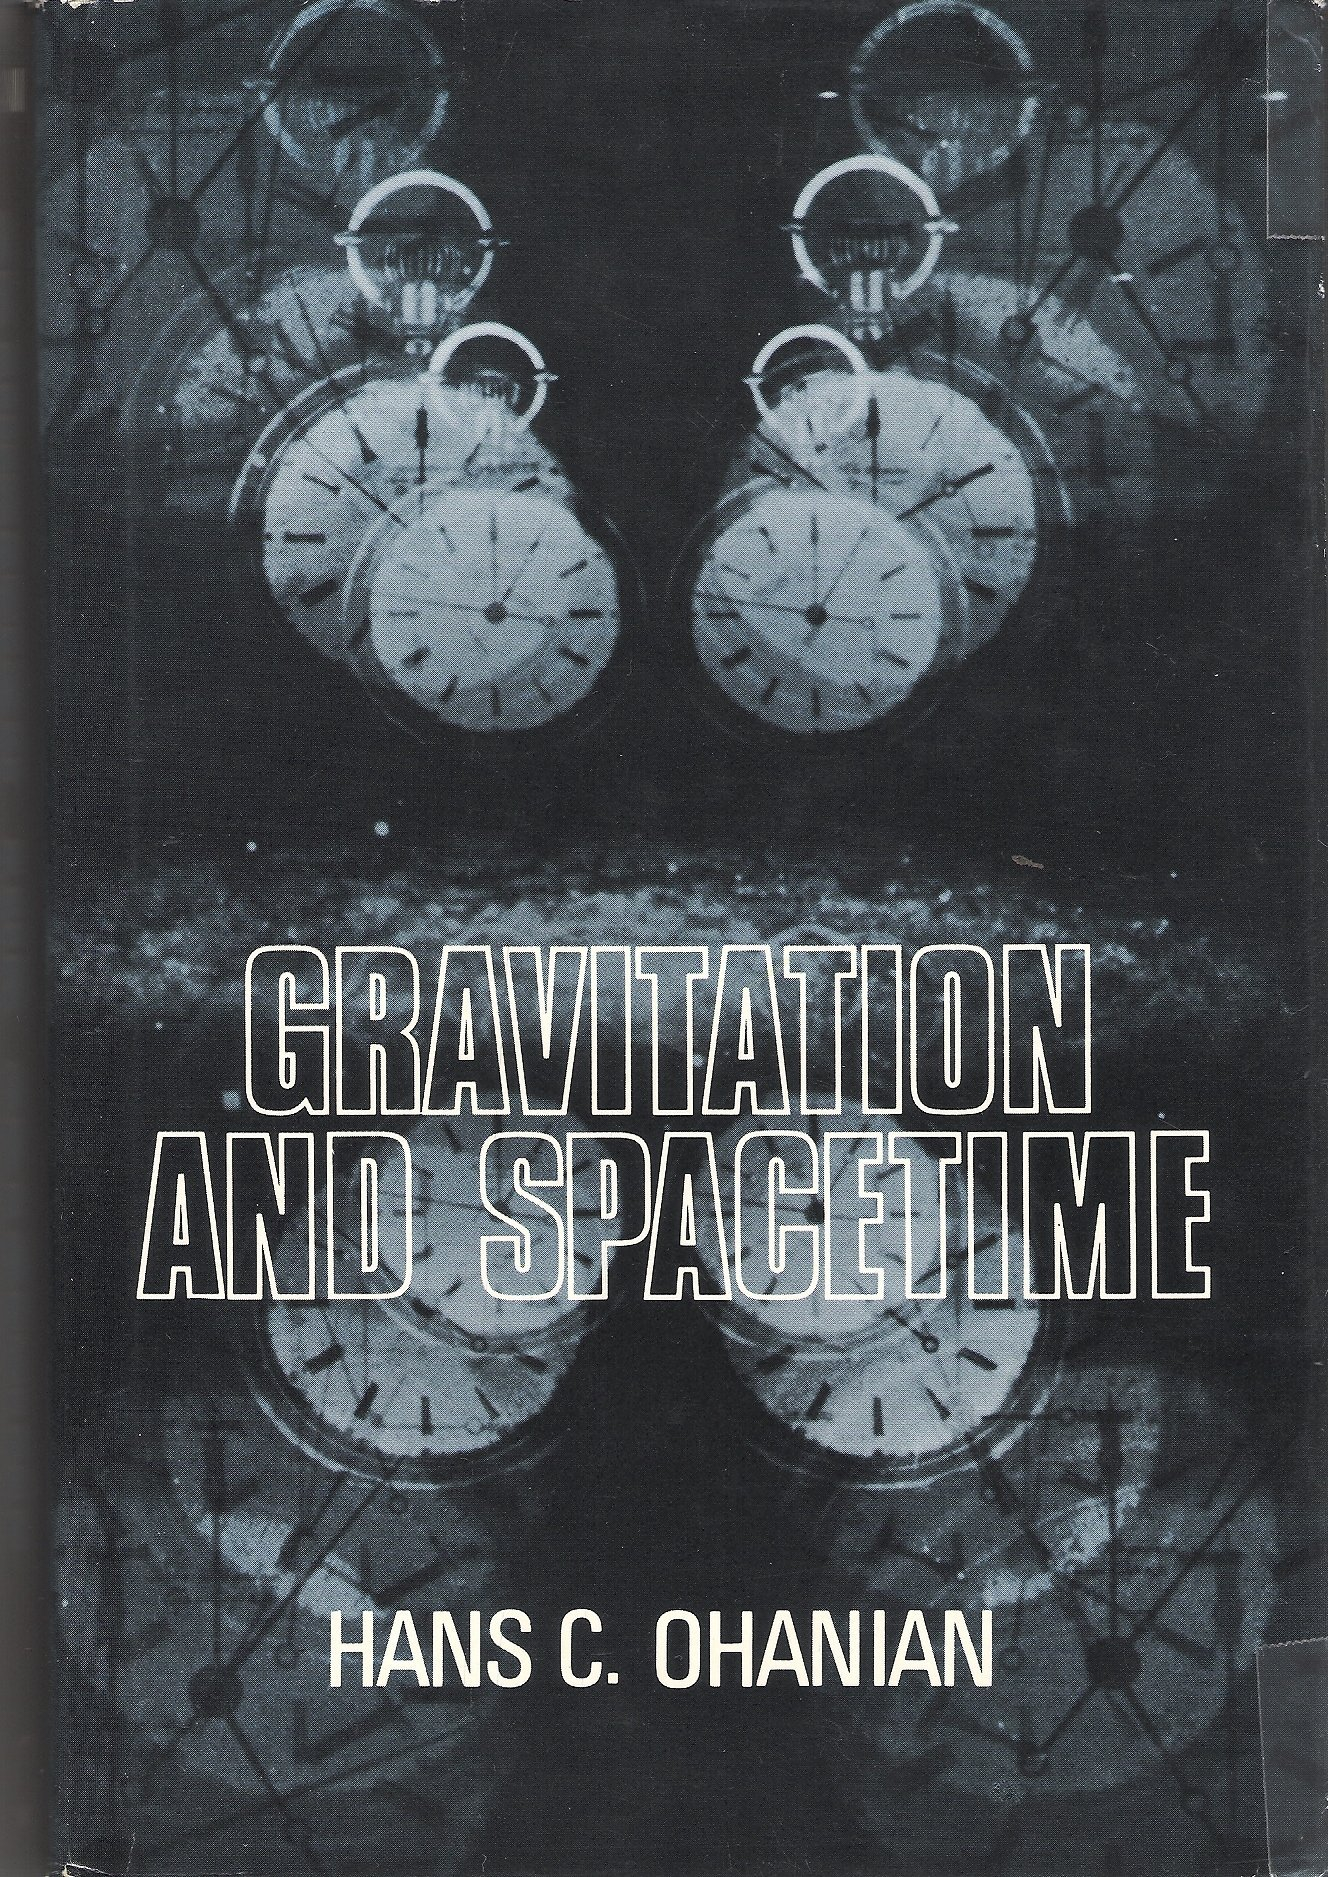 Gravitation and Spacetime Hans C. Ohanian